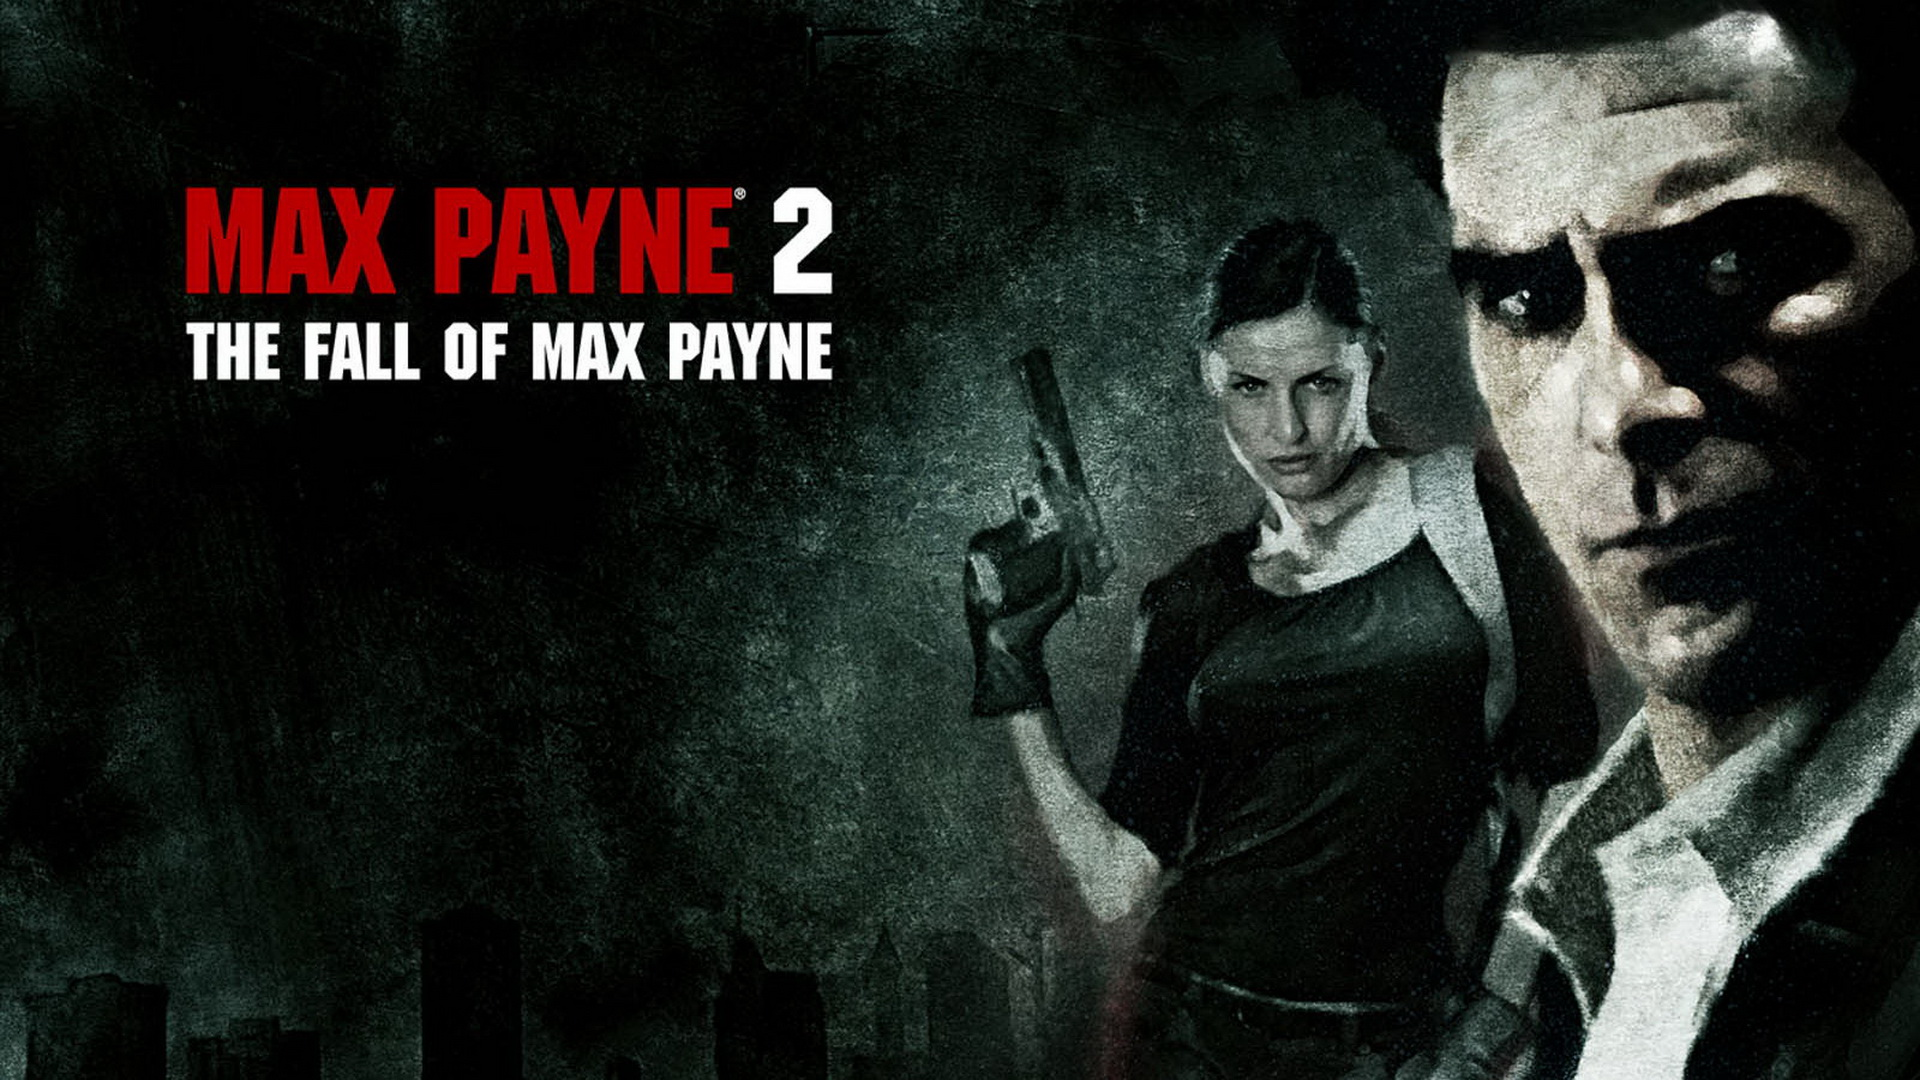 8 Max Payne 2 The Fall Of Max Payne HD Wallpapers 1920x1080